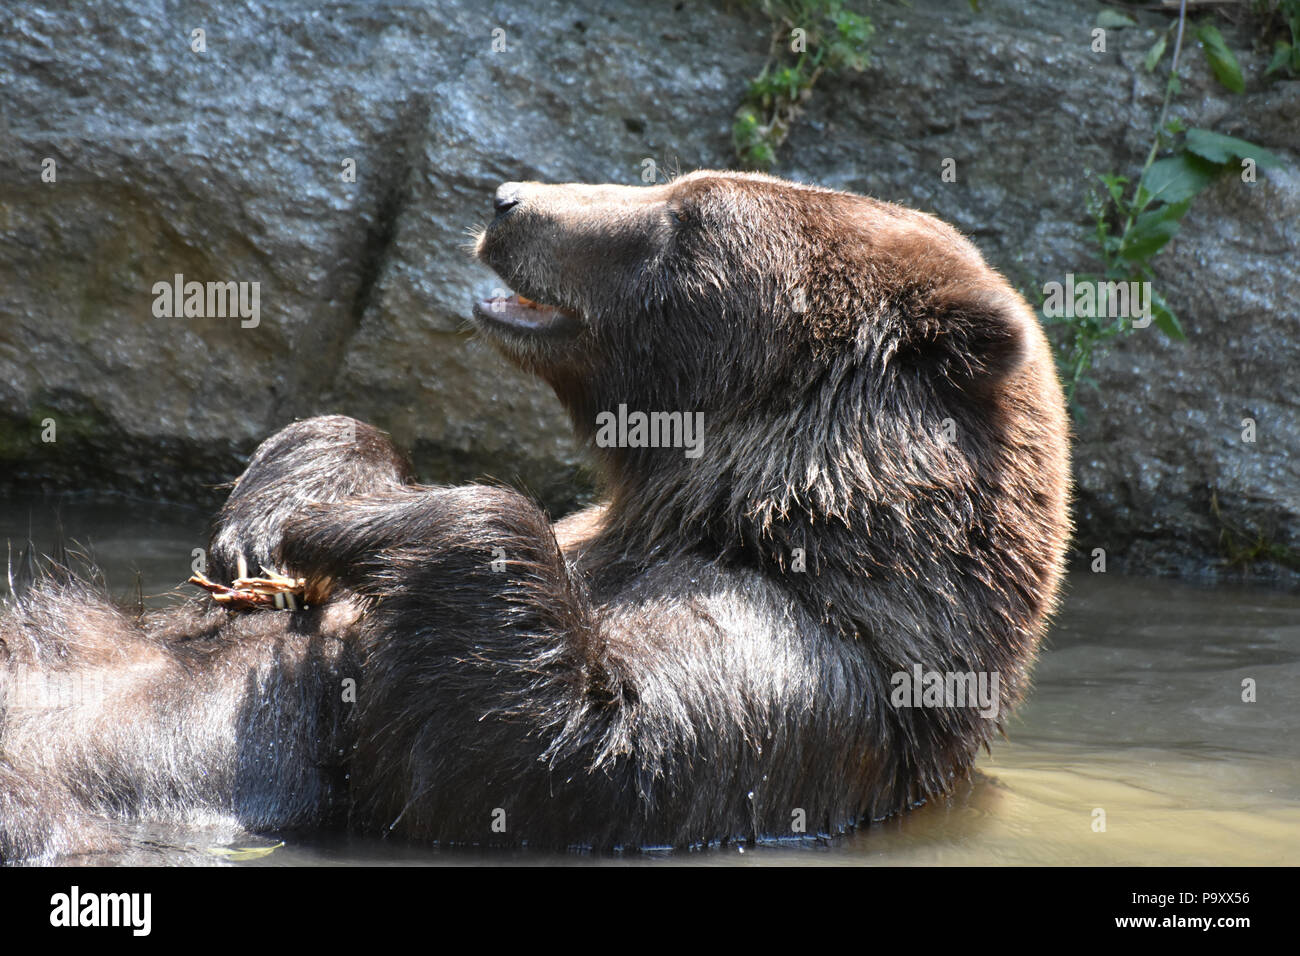 Wild silvertip grizzly bathing with its mouth open - Stock Image